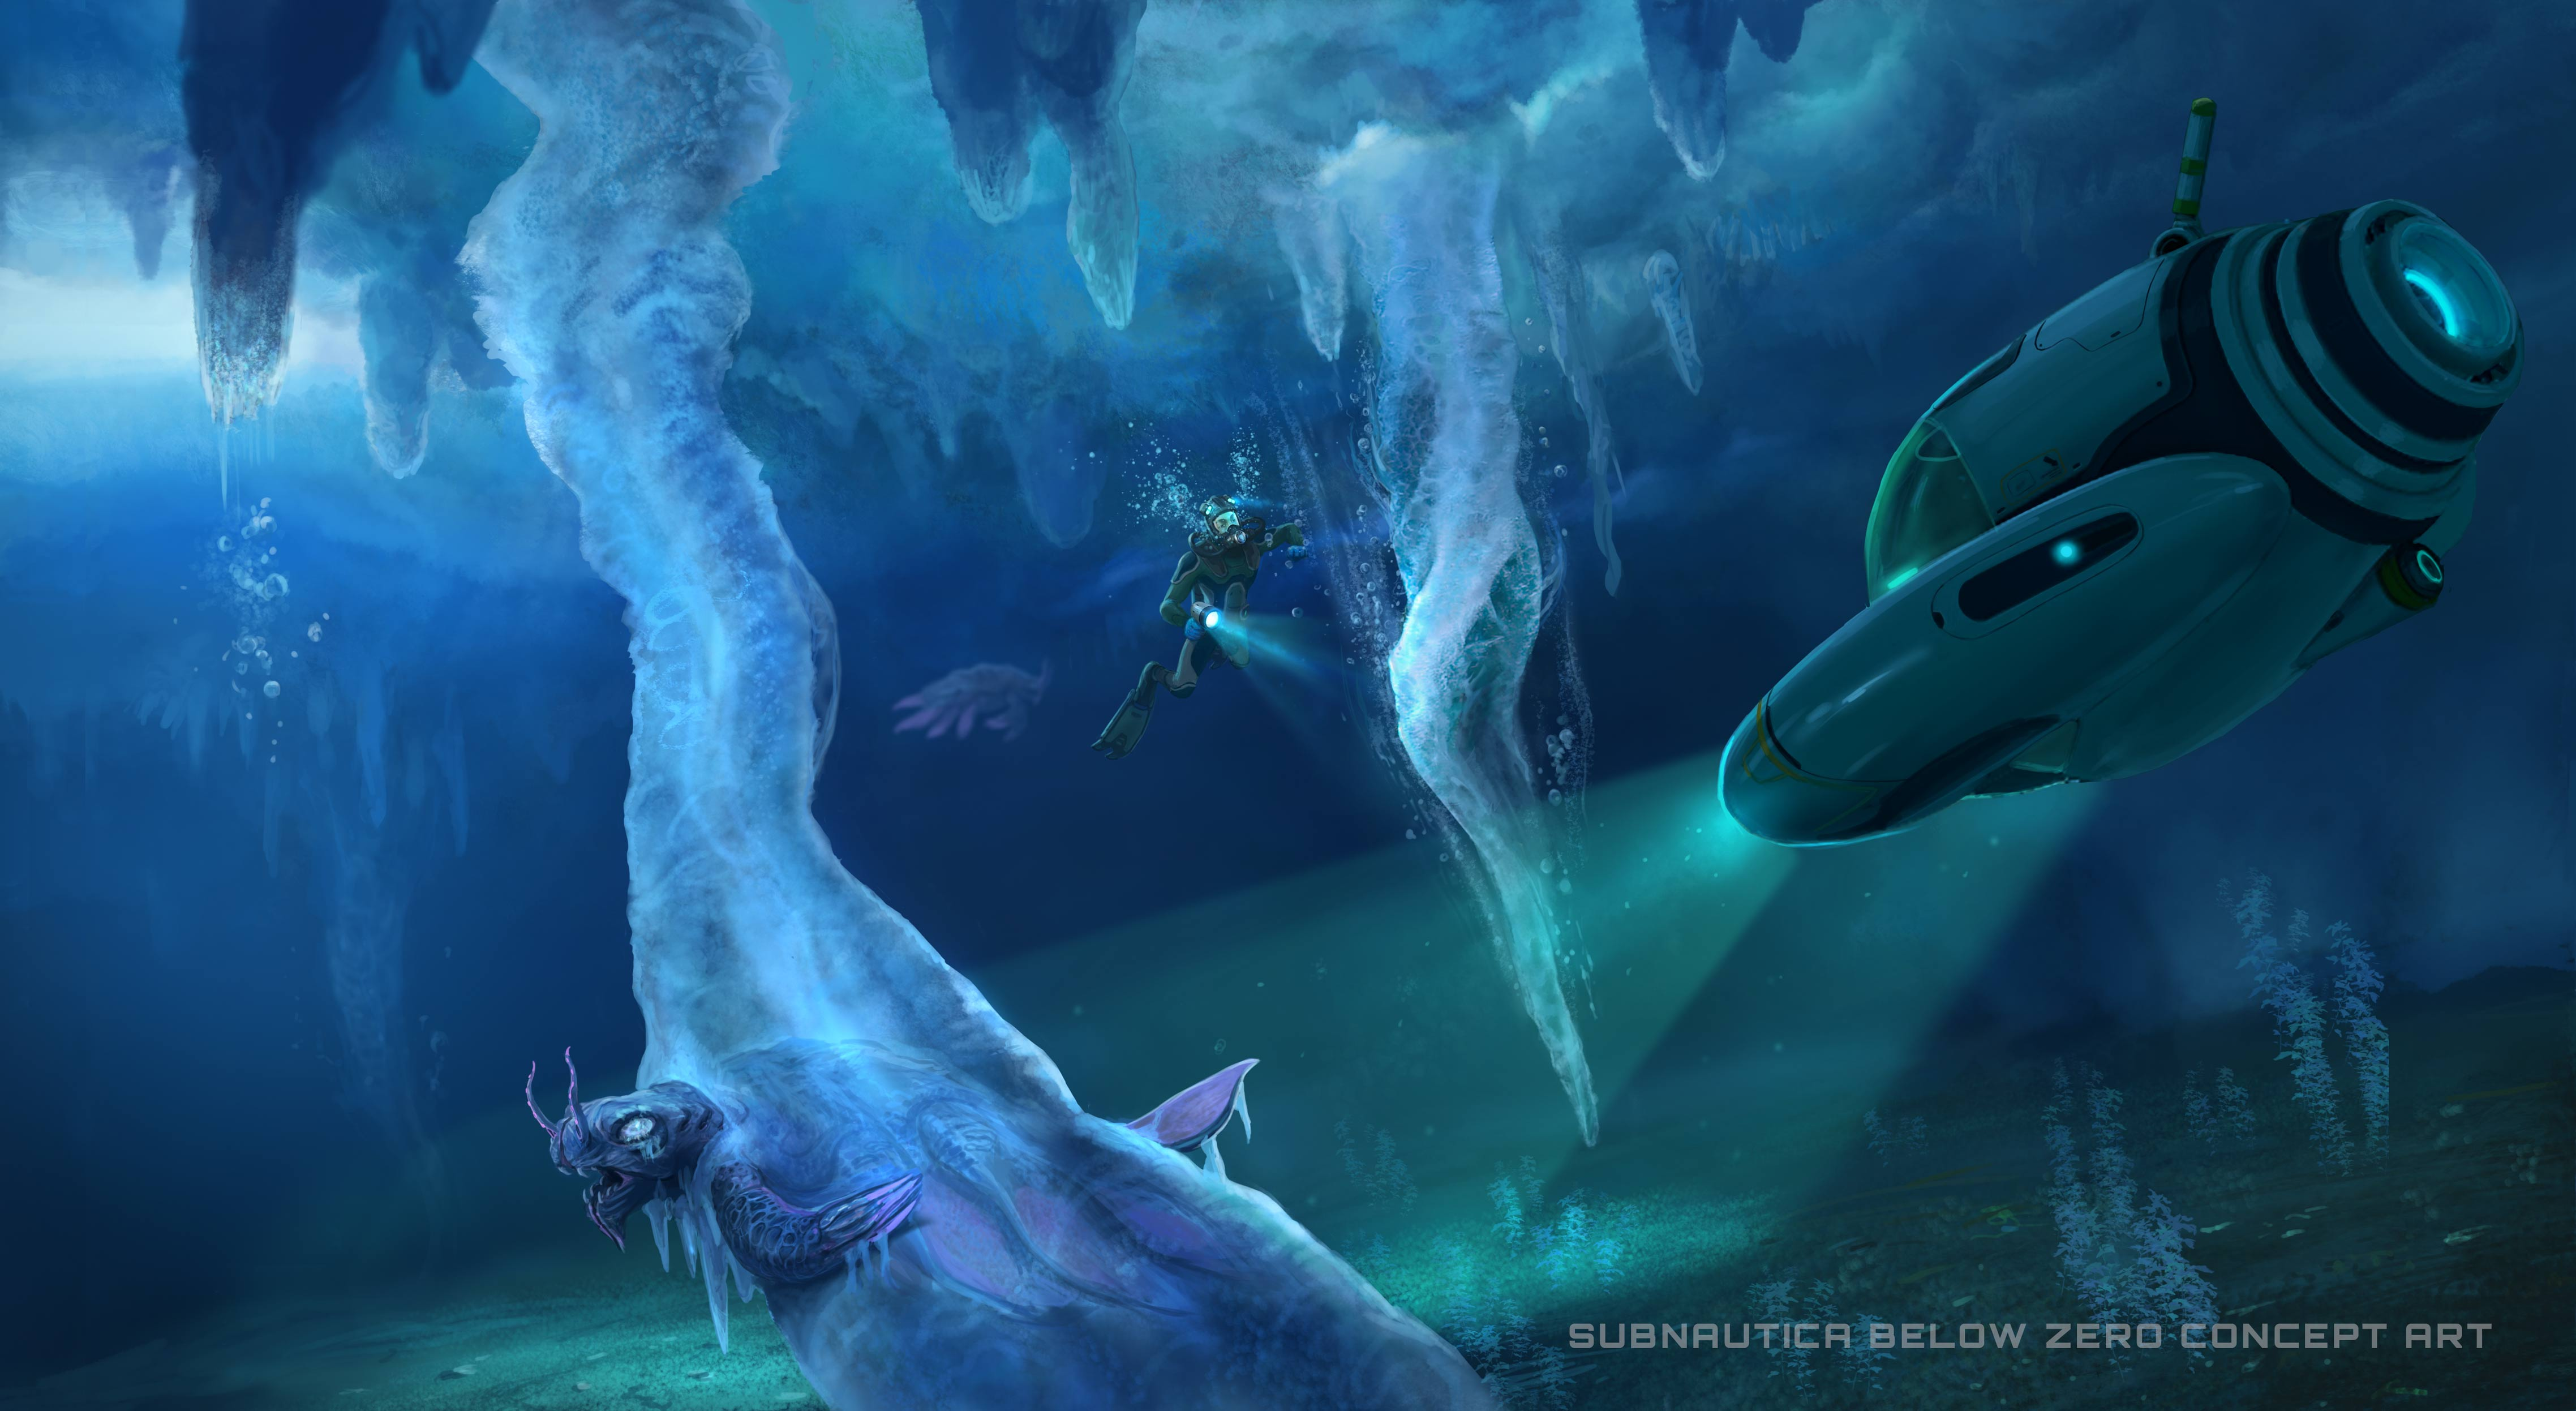 Subnautica: Below Zero - A submarine below a glacier, illuminating a large, turtle-like creature trapped in the ice of an alien world.